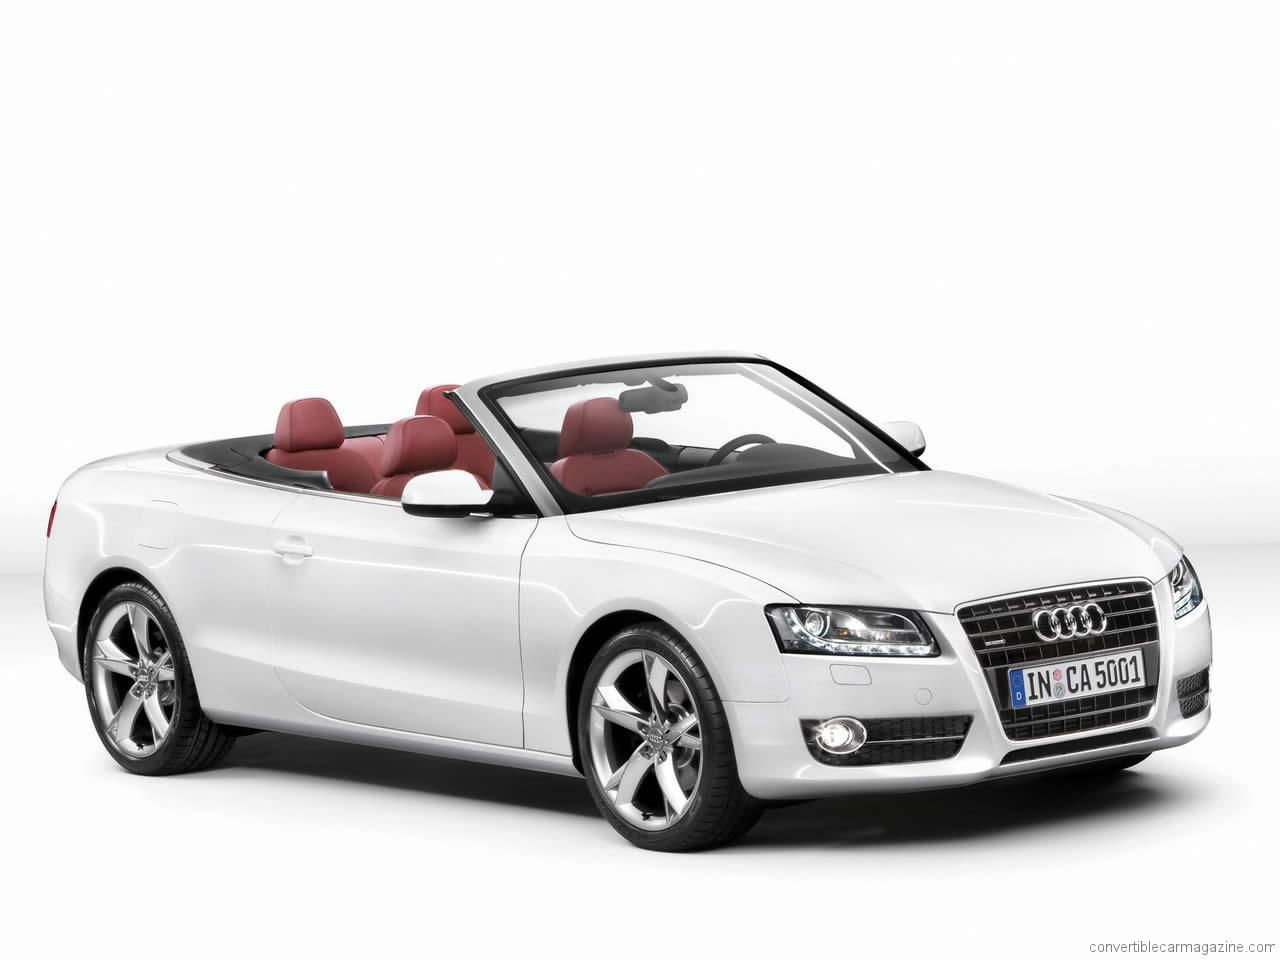 audi a5 cabriolet for sale audi audia5cabrioletforsale audicabriolet audicars. Black Bedroom Furniture Sets. Home Design Ideas